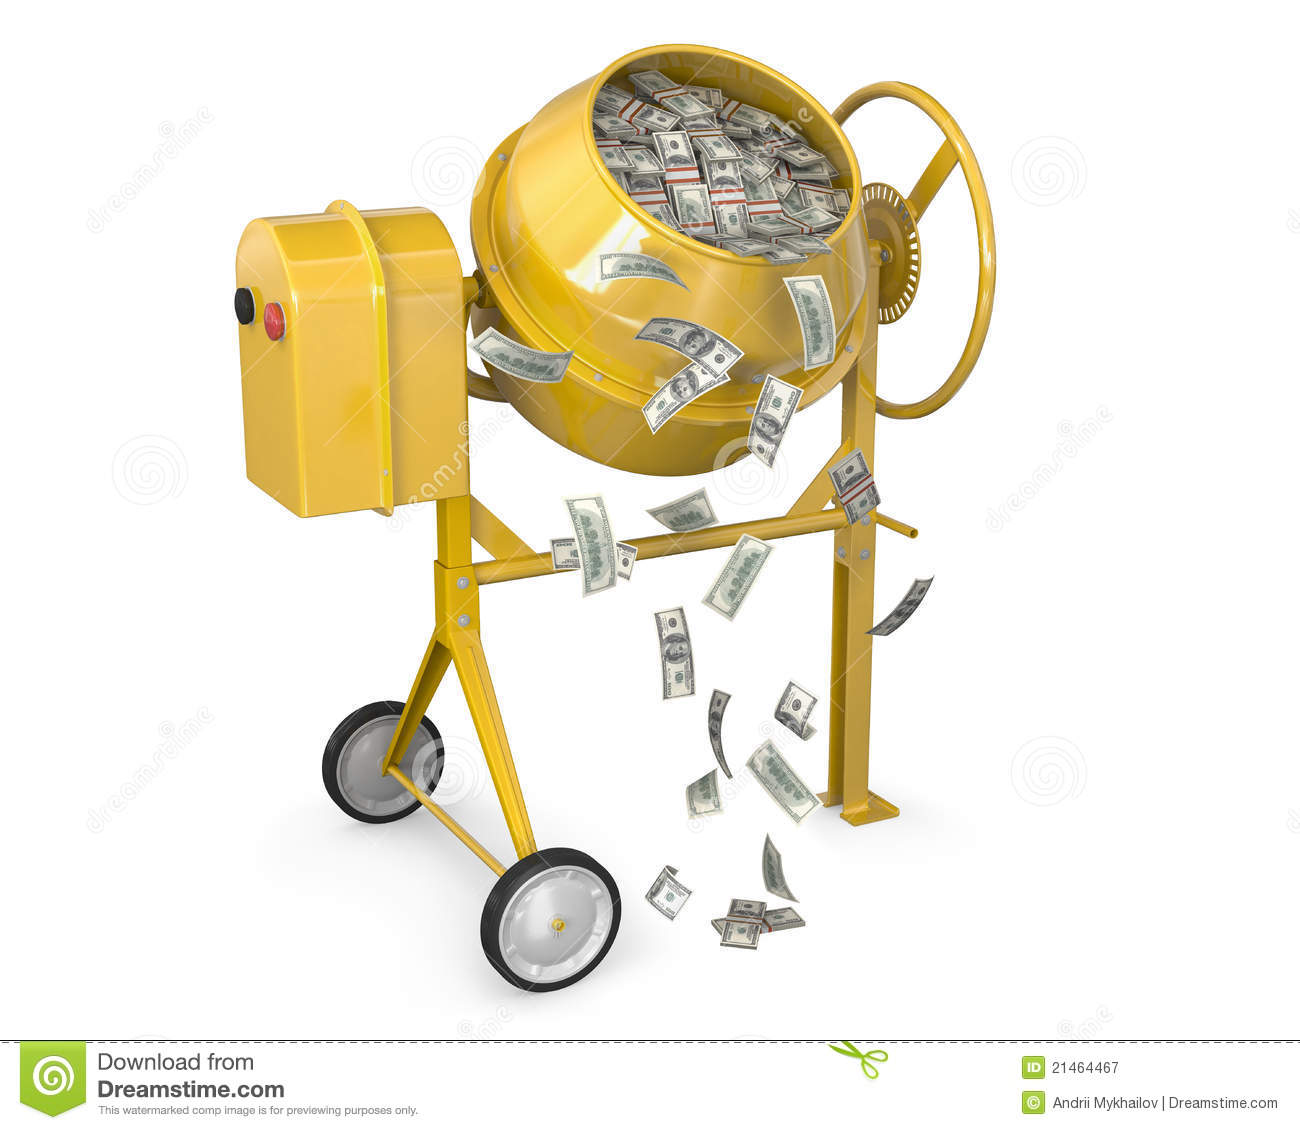 Concrete Mixing Animation : Concrete mixer full of dollars royalty free stock